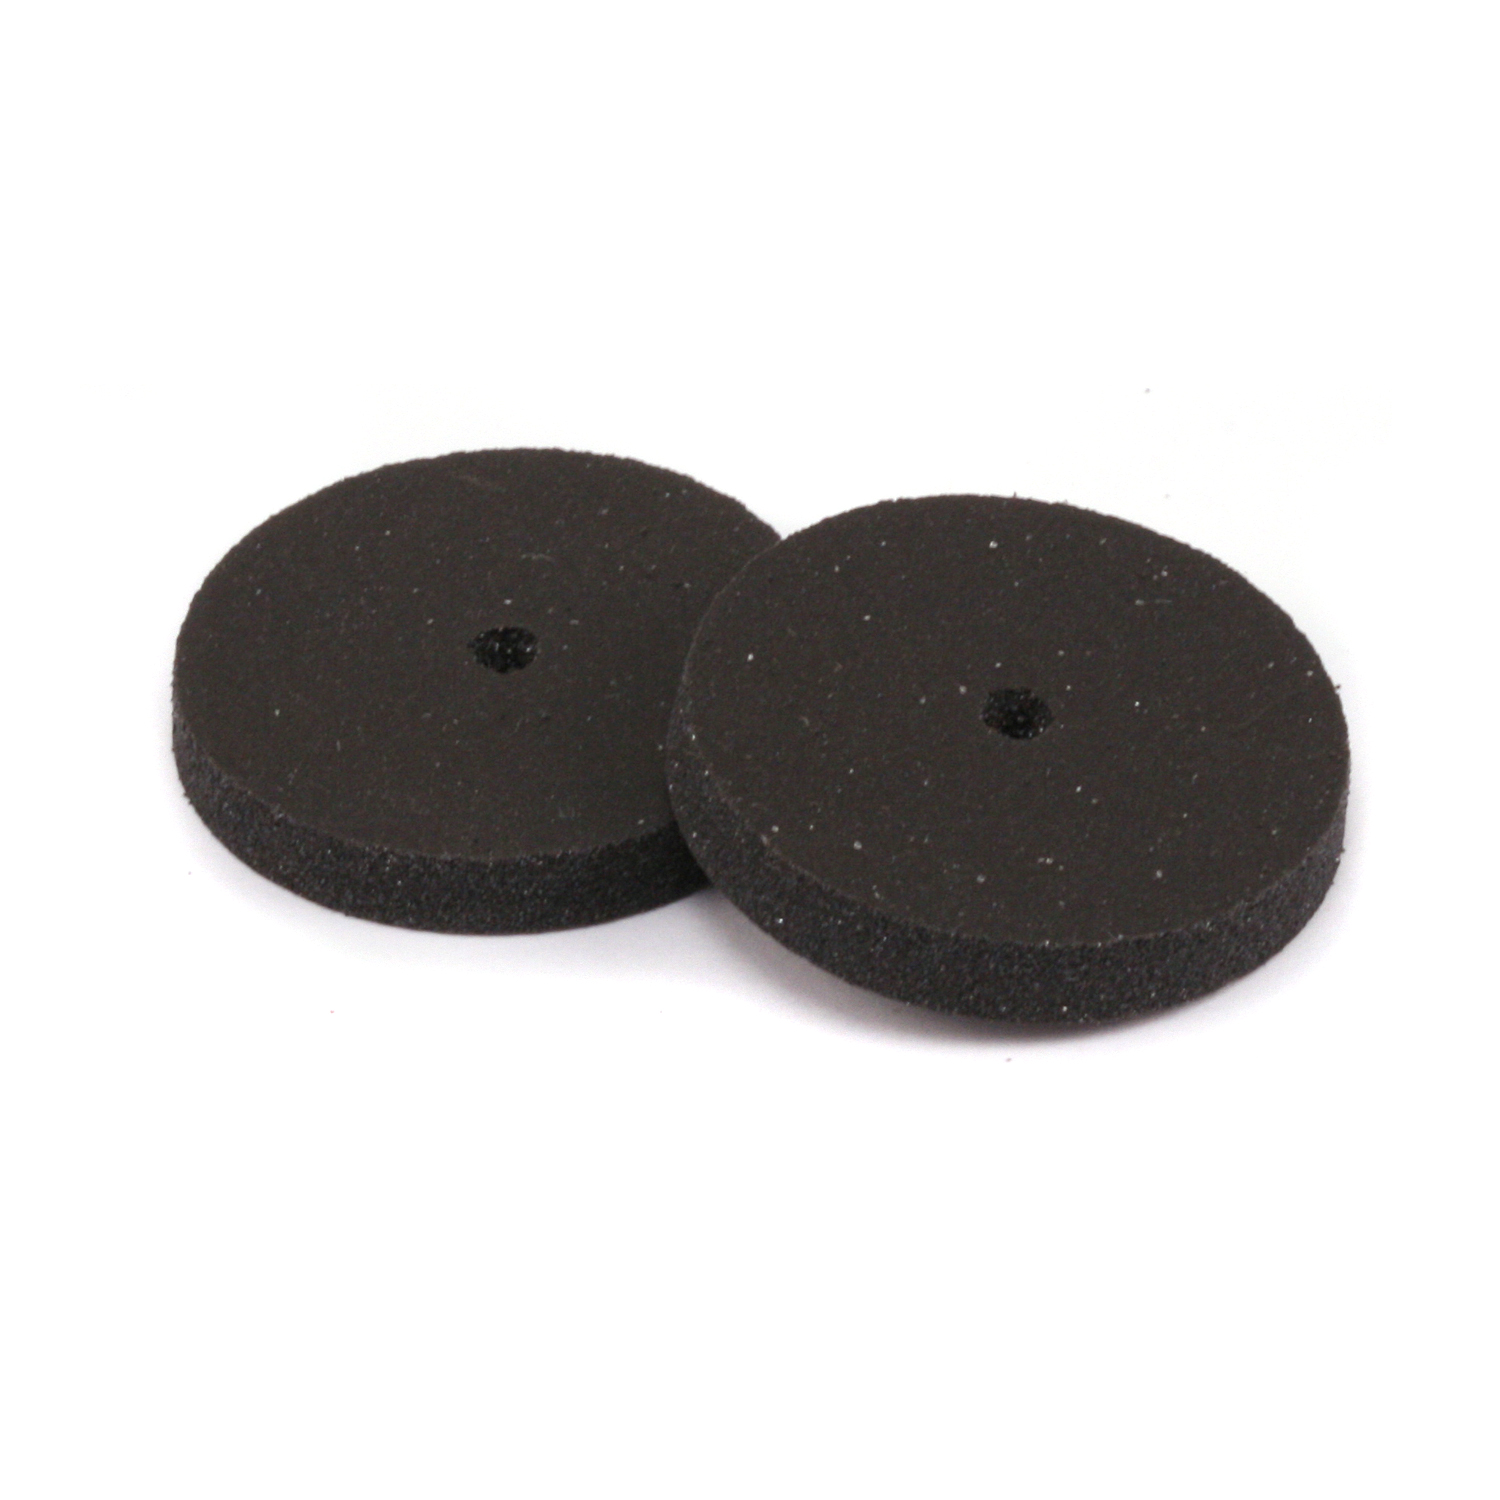 "Silicone Polishing Wheel, Square Edge - Black 7/8"" Medium, 2pk"